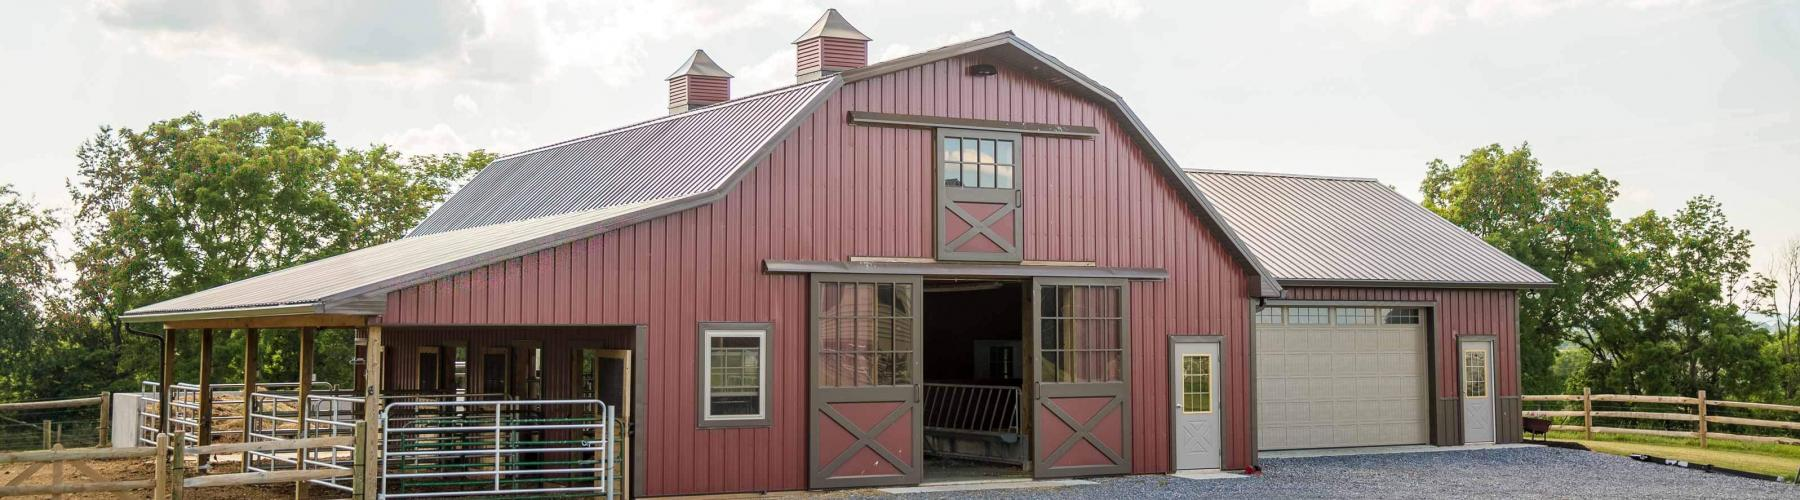 This barn / garage combination was built by Stable Hollow Construction